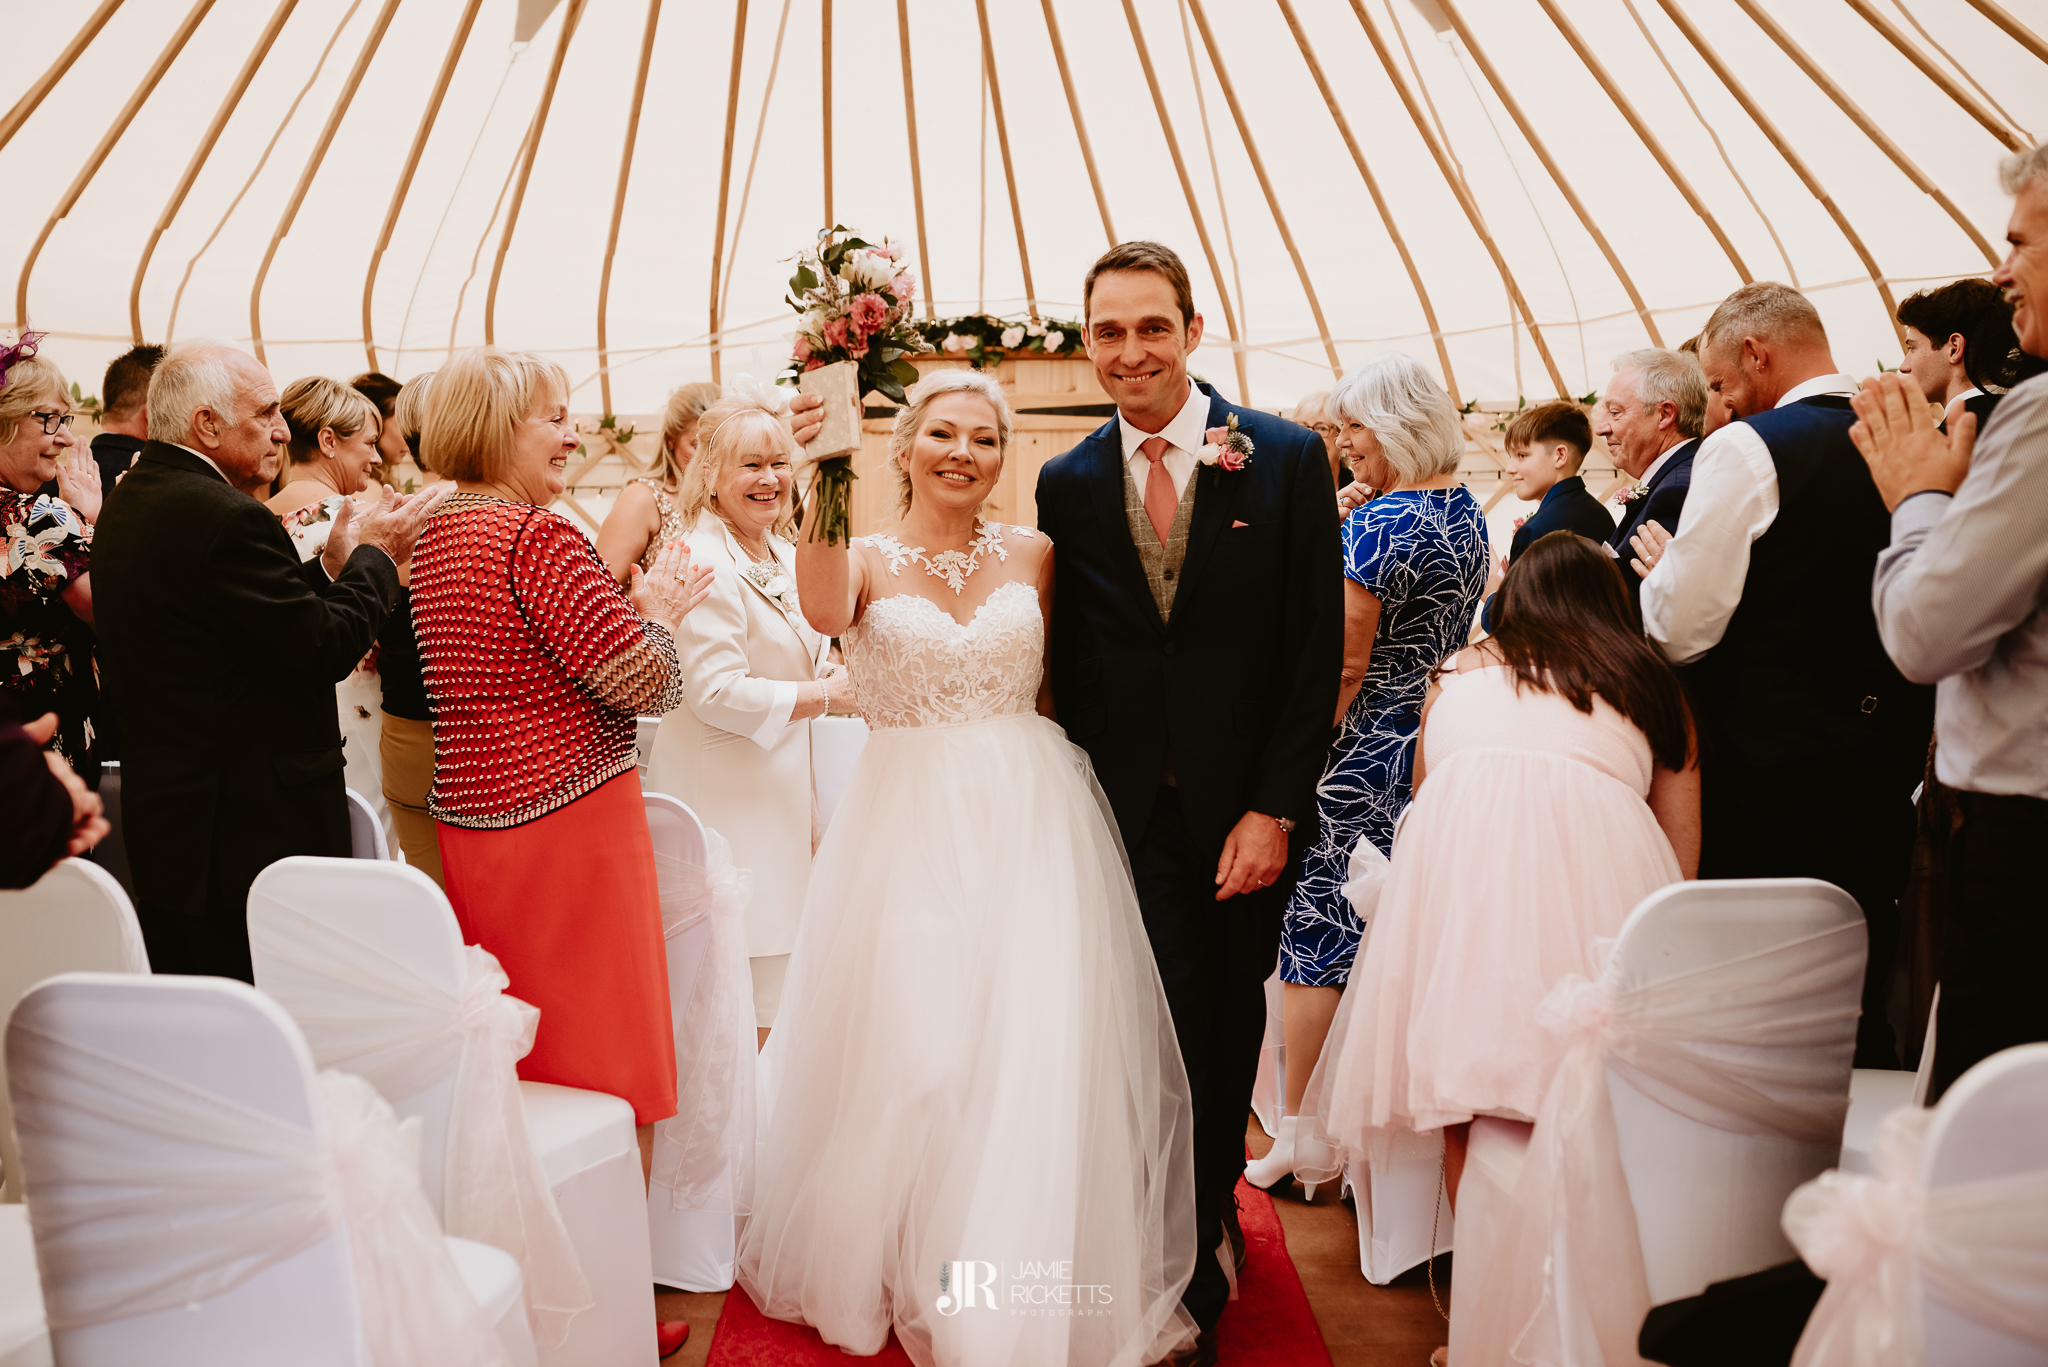 Wroxeter-Hotel-Wedding-Photography-In-Shropshire-By-Shropshire-Wedding-Photographer-Jamie-Ricketts-076.JPG